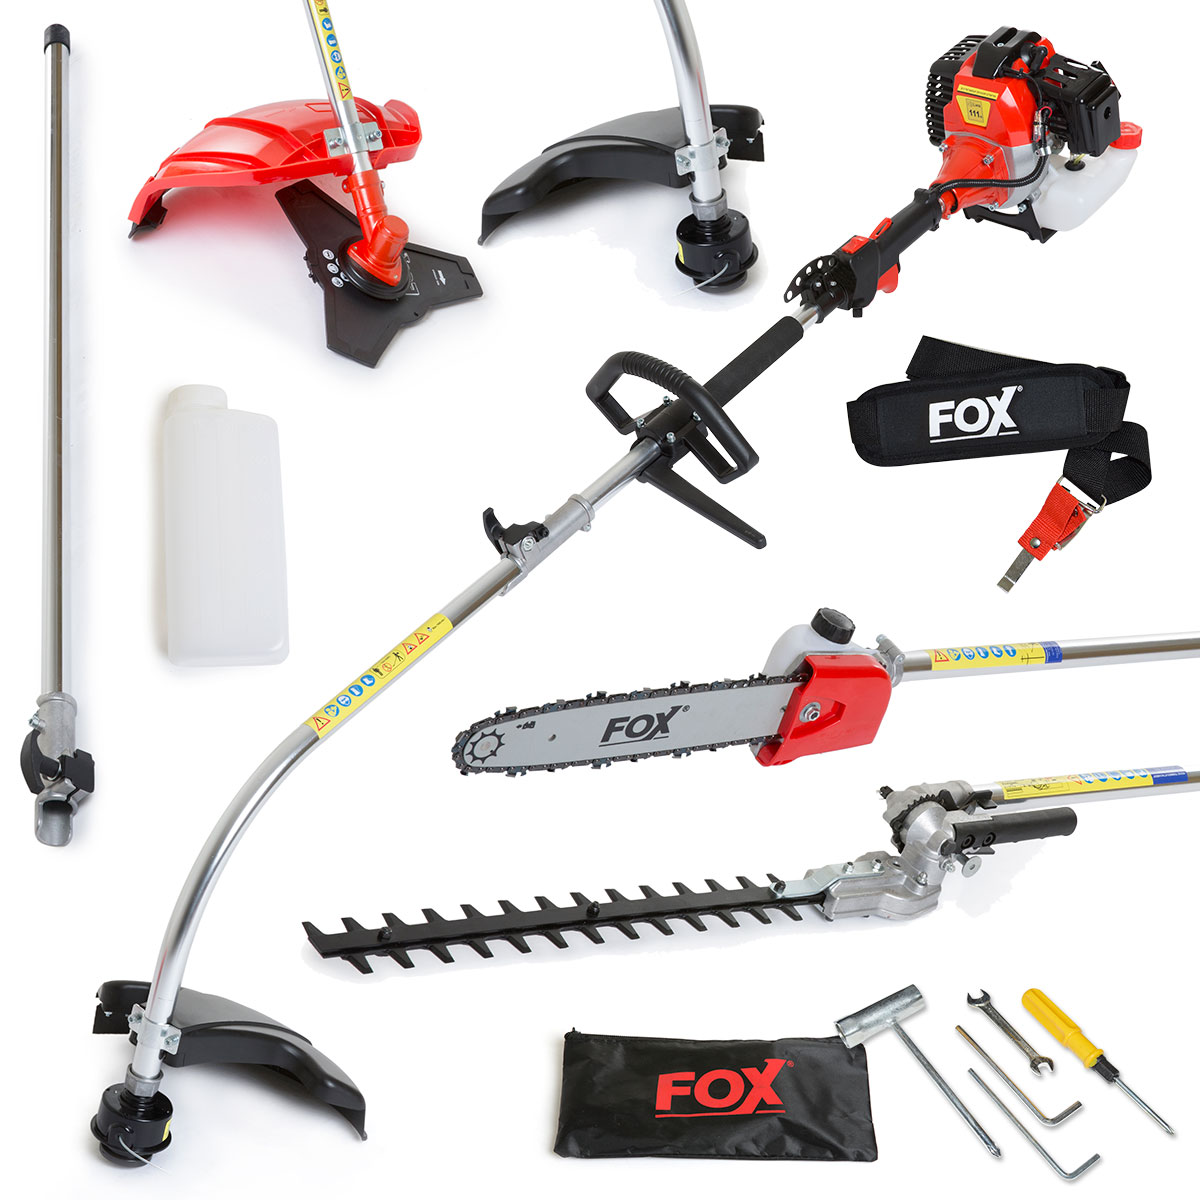 Fox Commander 52cc 6in1 Petrol Trimmer with Oregon Chain